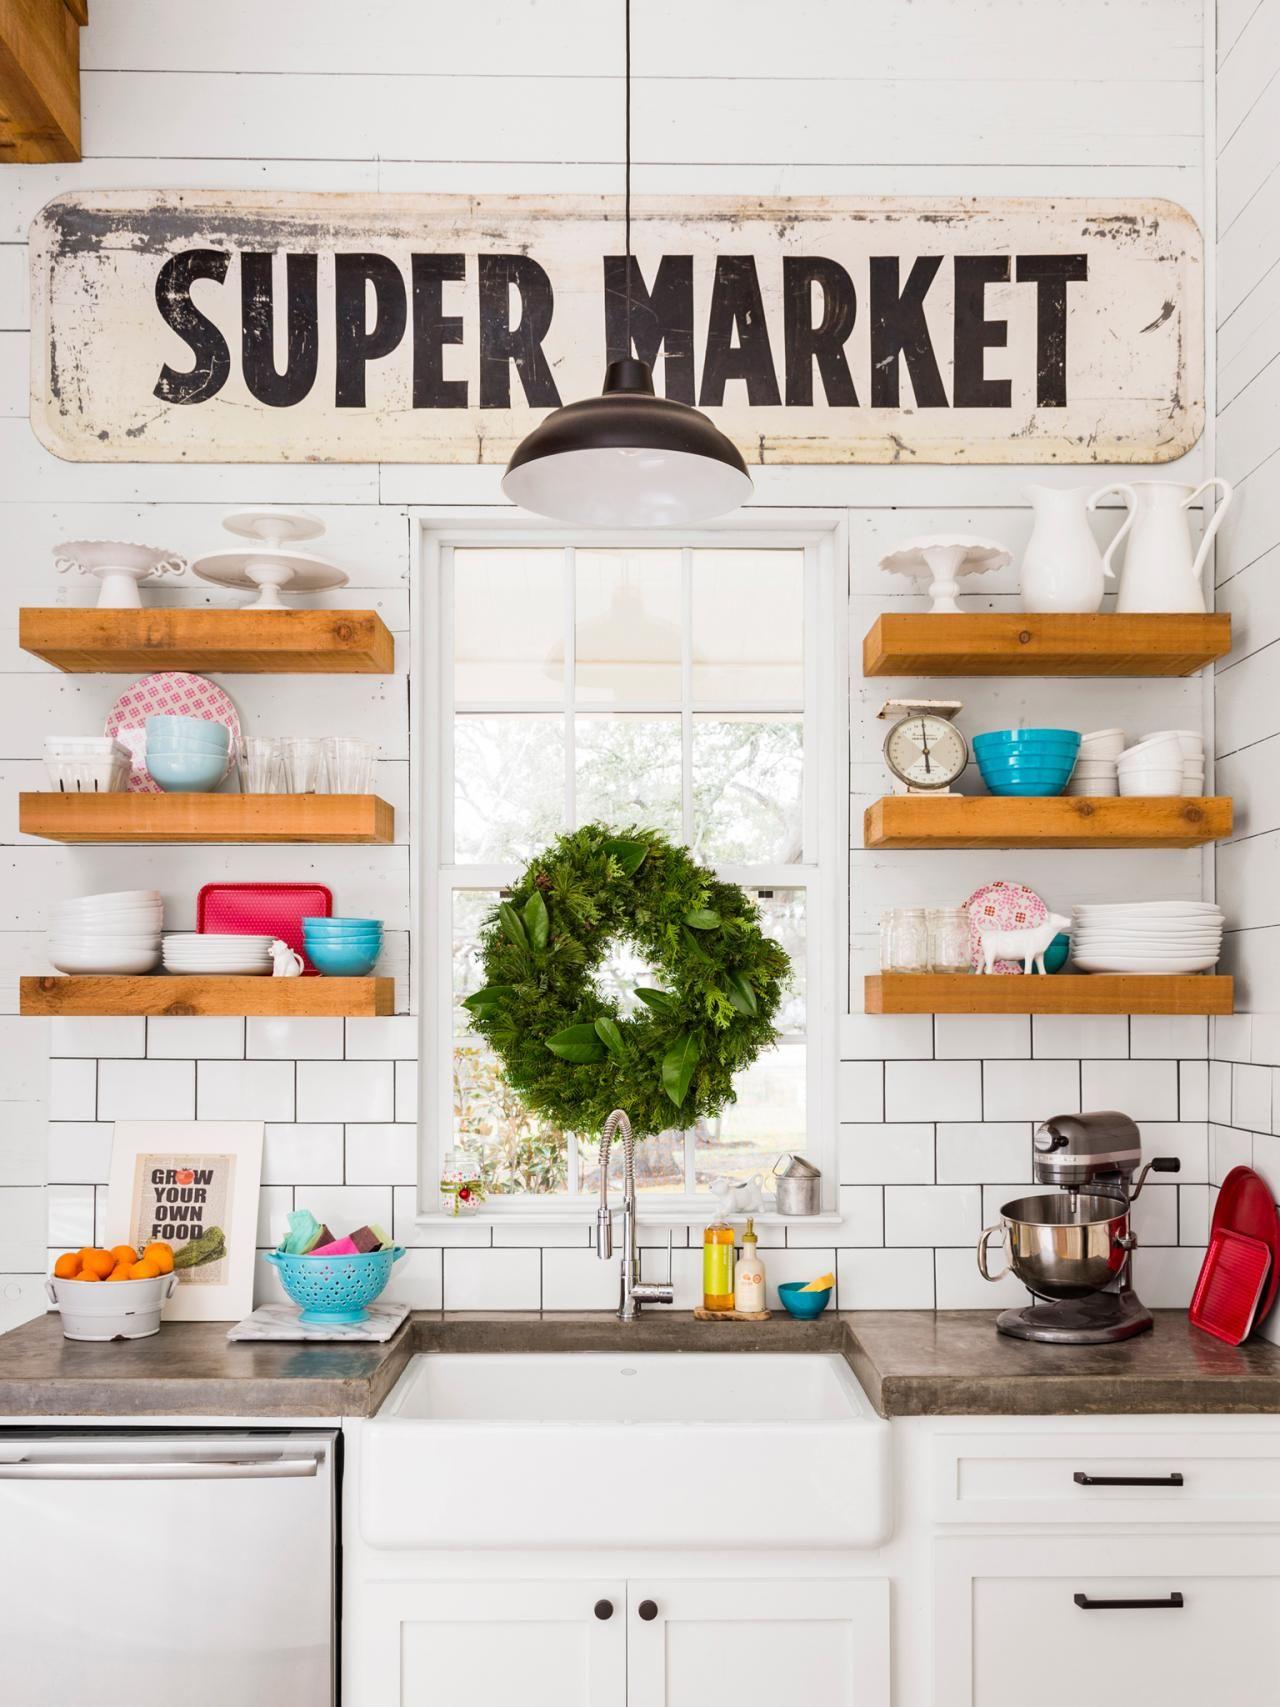 Fixer upper kitchen scale - 1000 Images About Vintage Farmhouse On Pinterest Spotlight House Tours And Fixer Upper Hosts